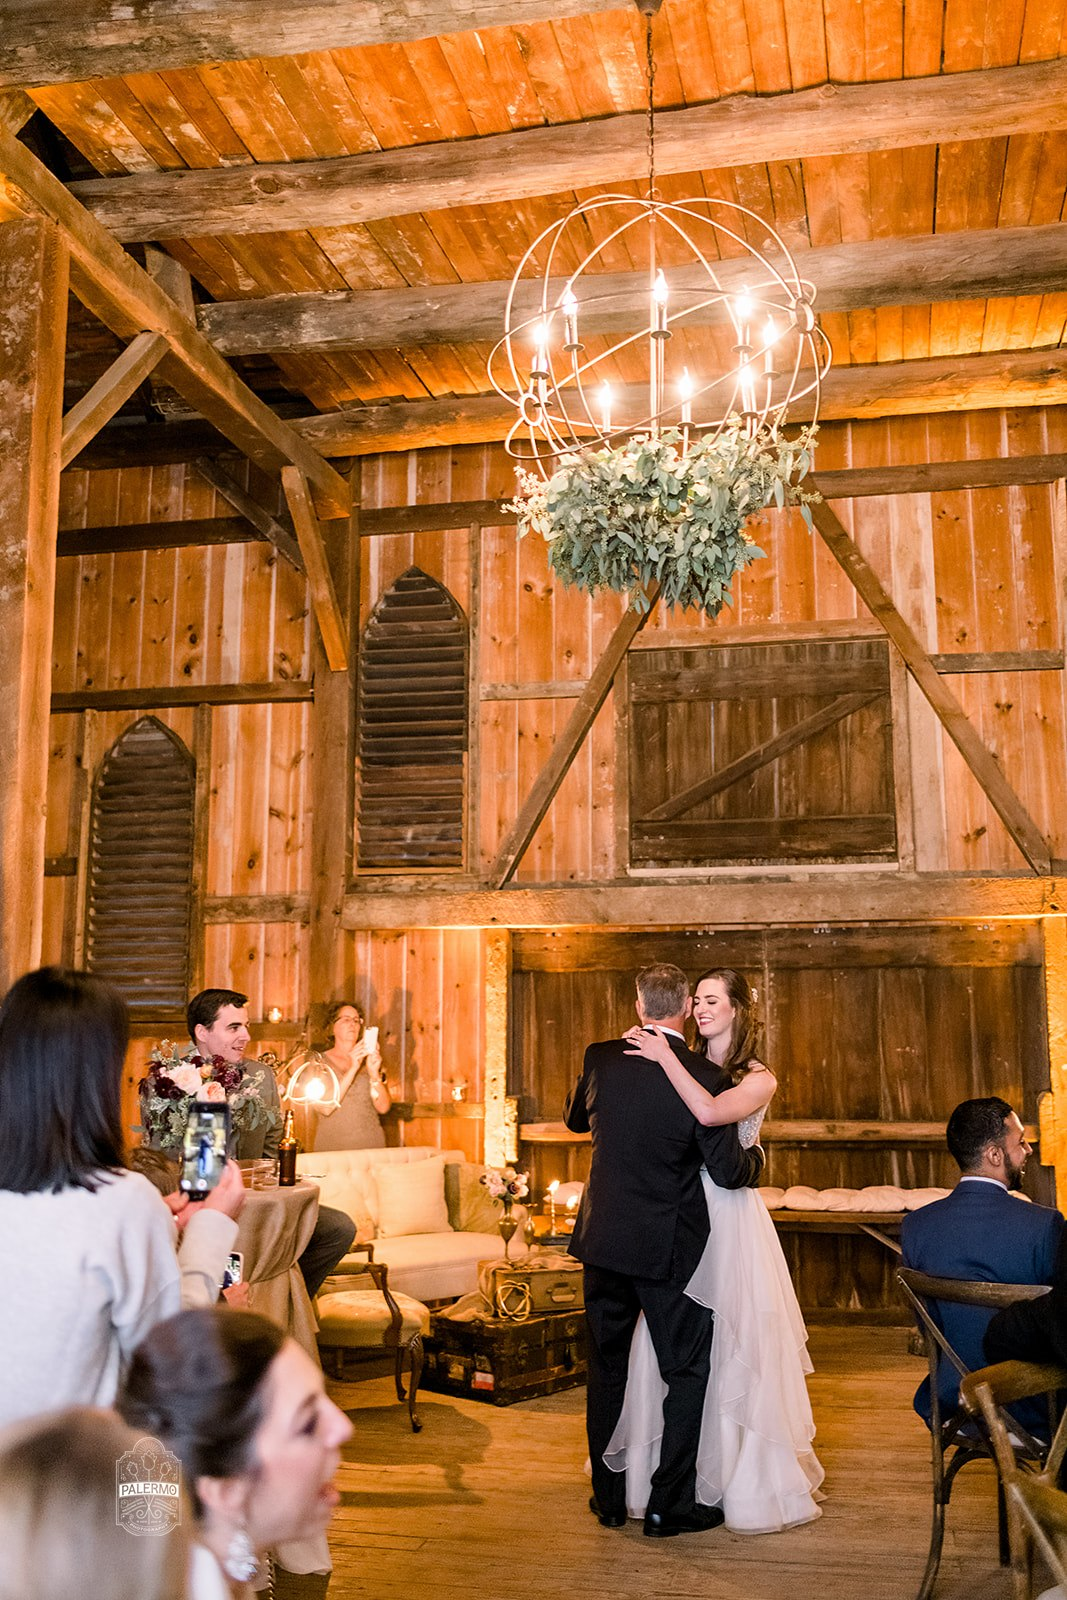 Father/daughter dance for fall barn wedding in Pittsburgh, PA planned by Exhale Events. Find more wedding inspiration at exhale-events.com!